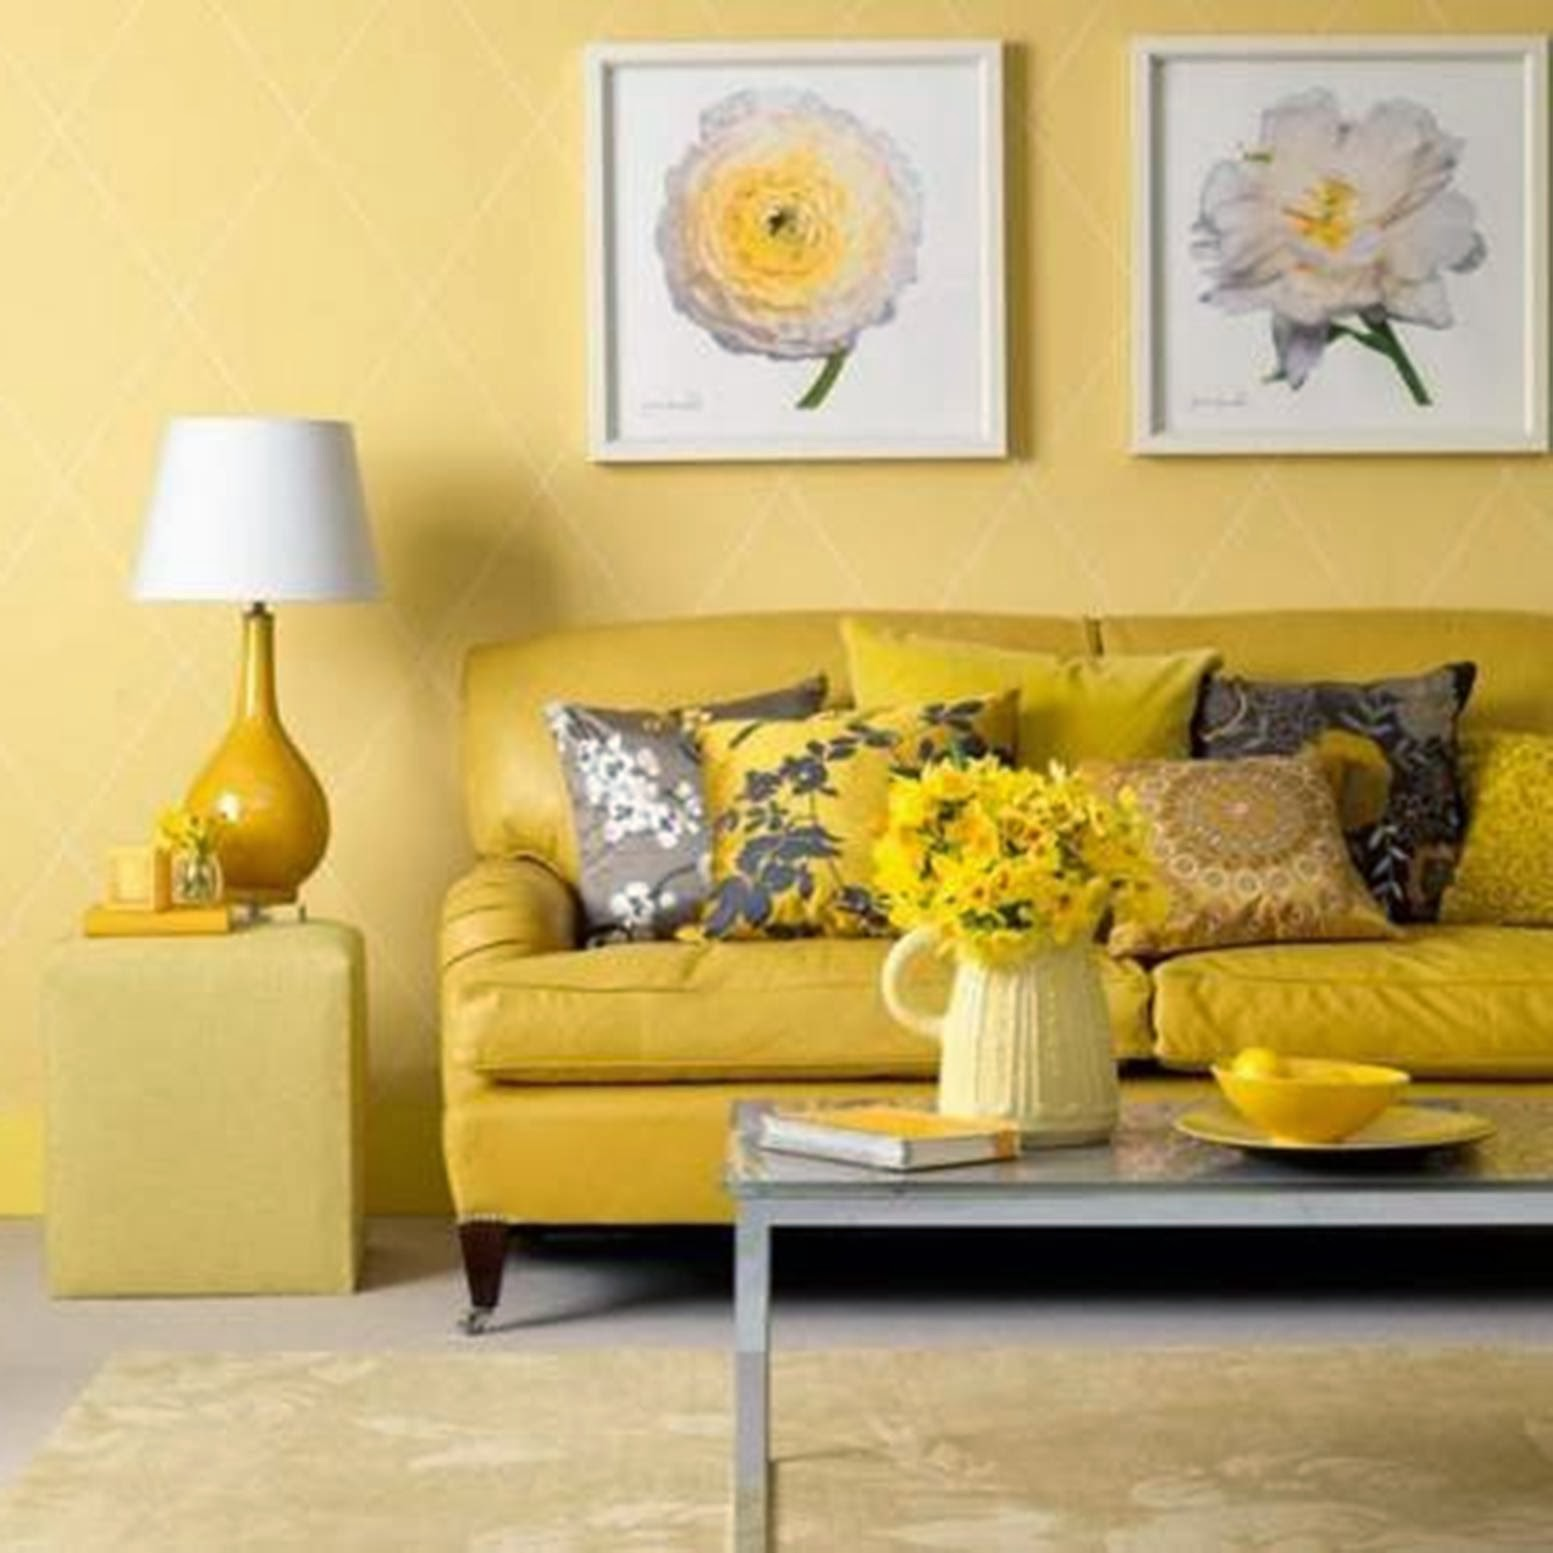 Design decor disha an indian design decor blog for Warm living room decor ideas